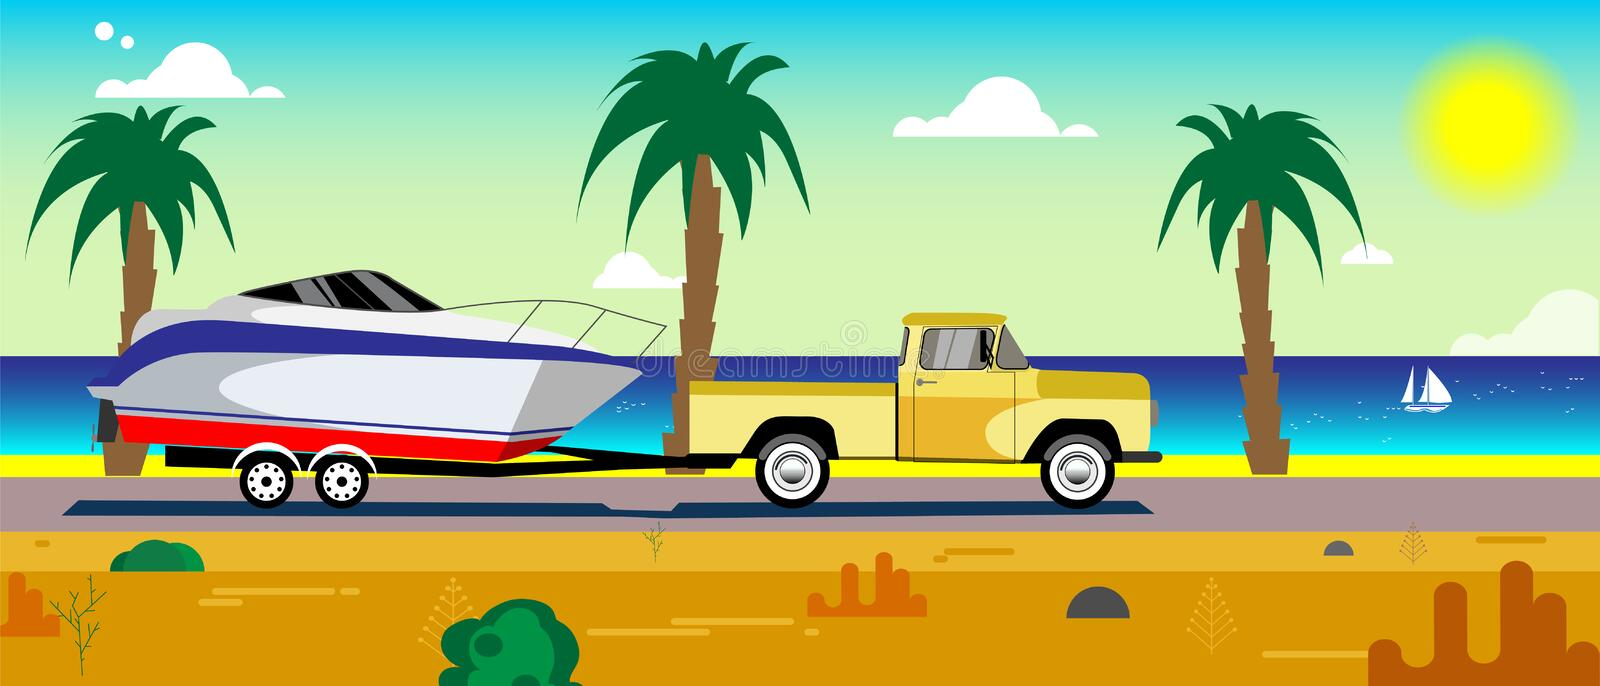 Car with a boat on a trailer vector illustration